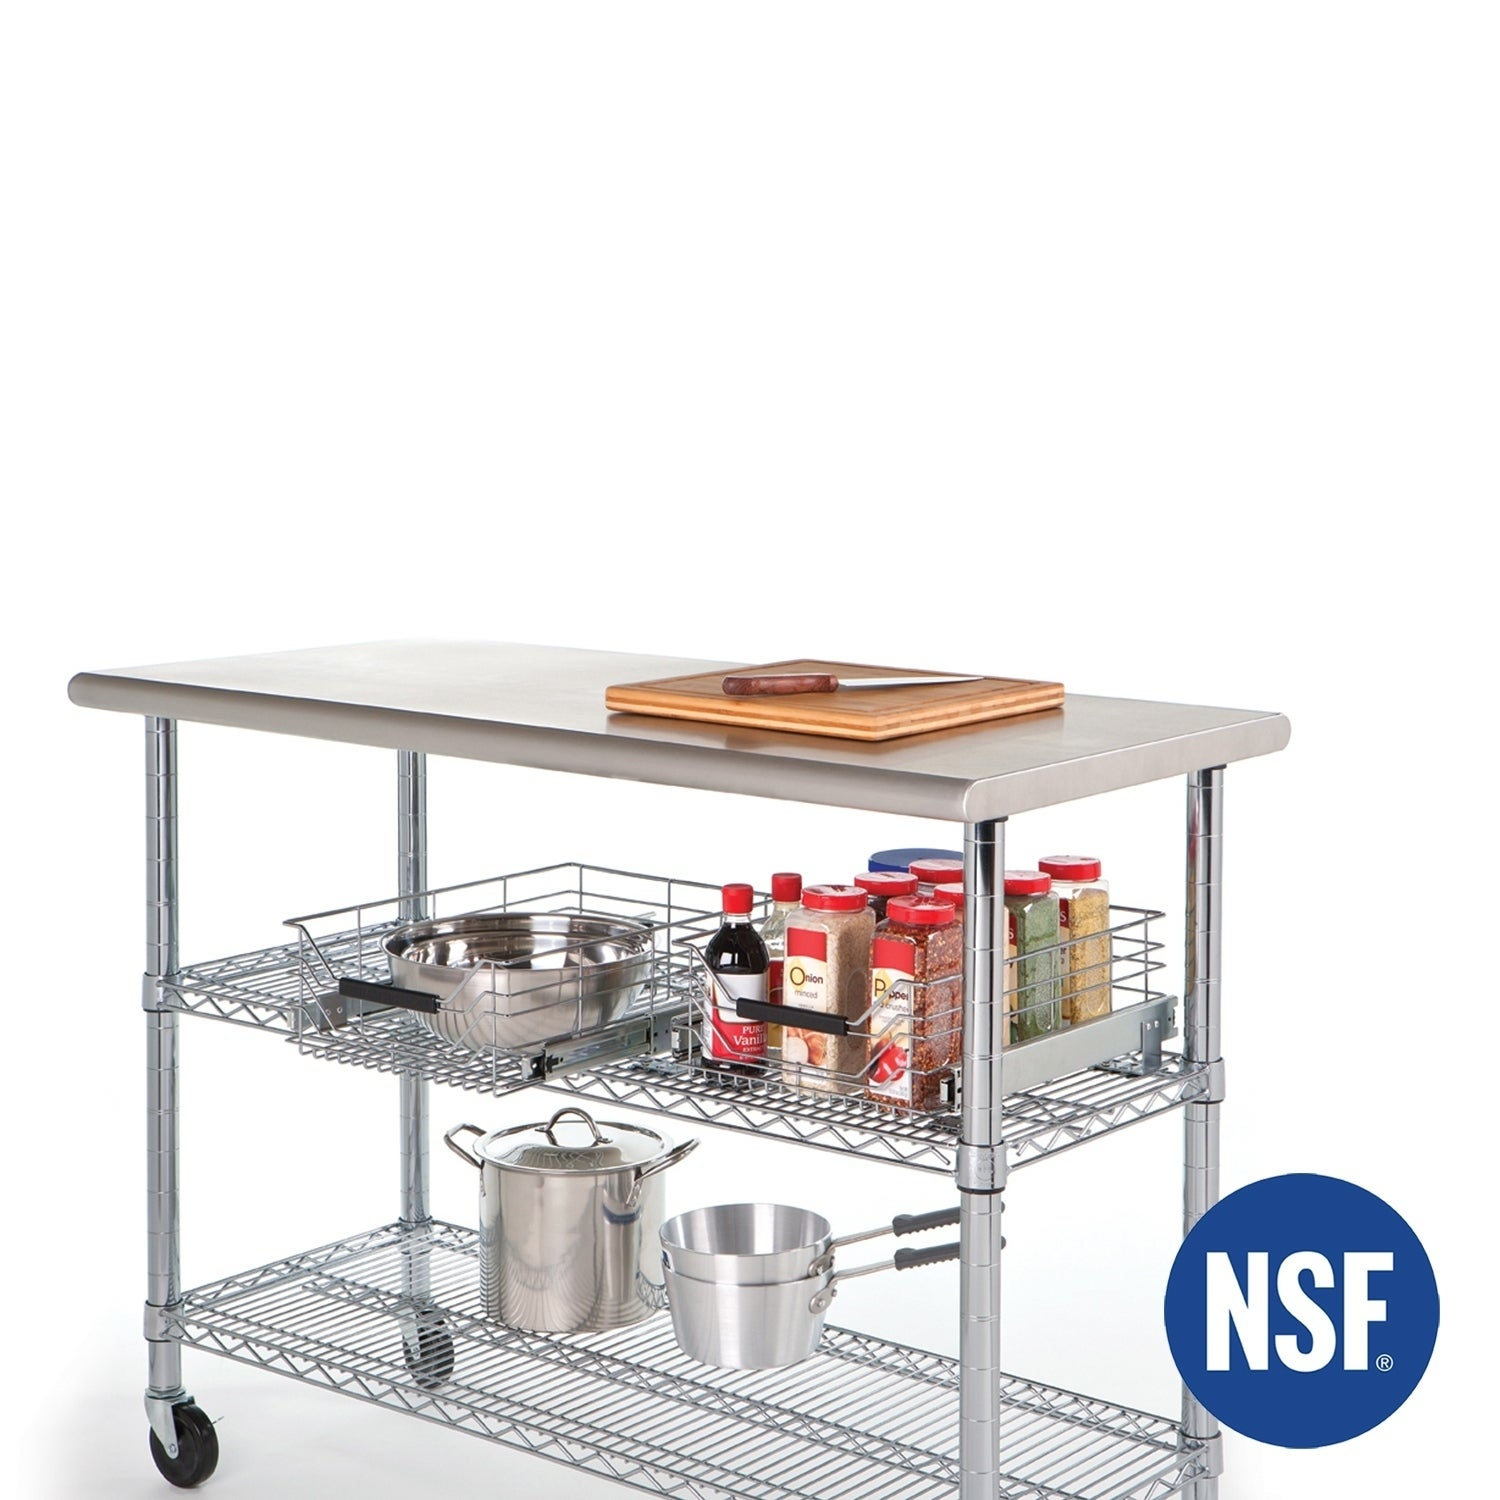 Shop Seville Classics Stainless Steel Work Table Free Shipping - Stainless steel work table with shelves